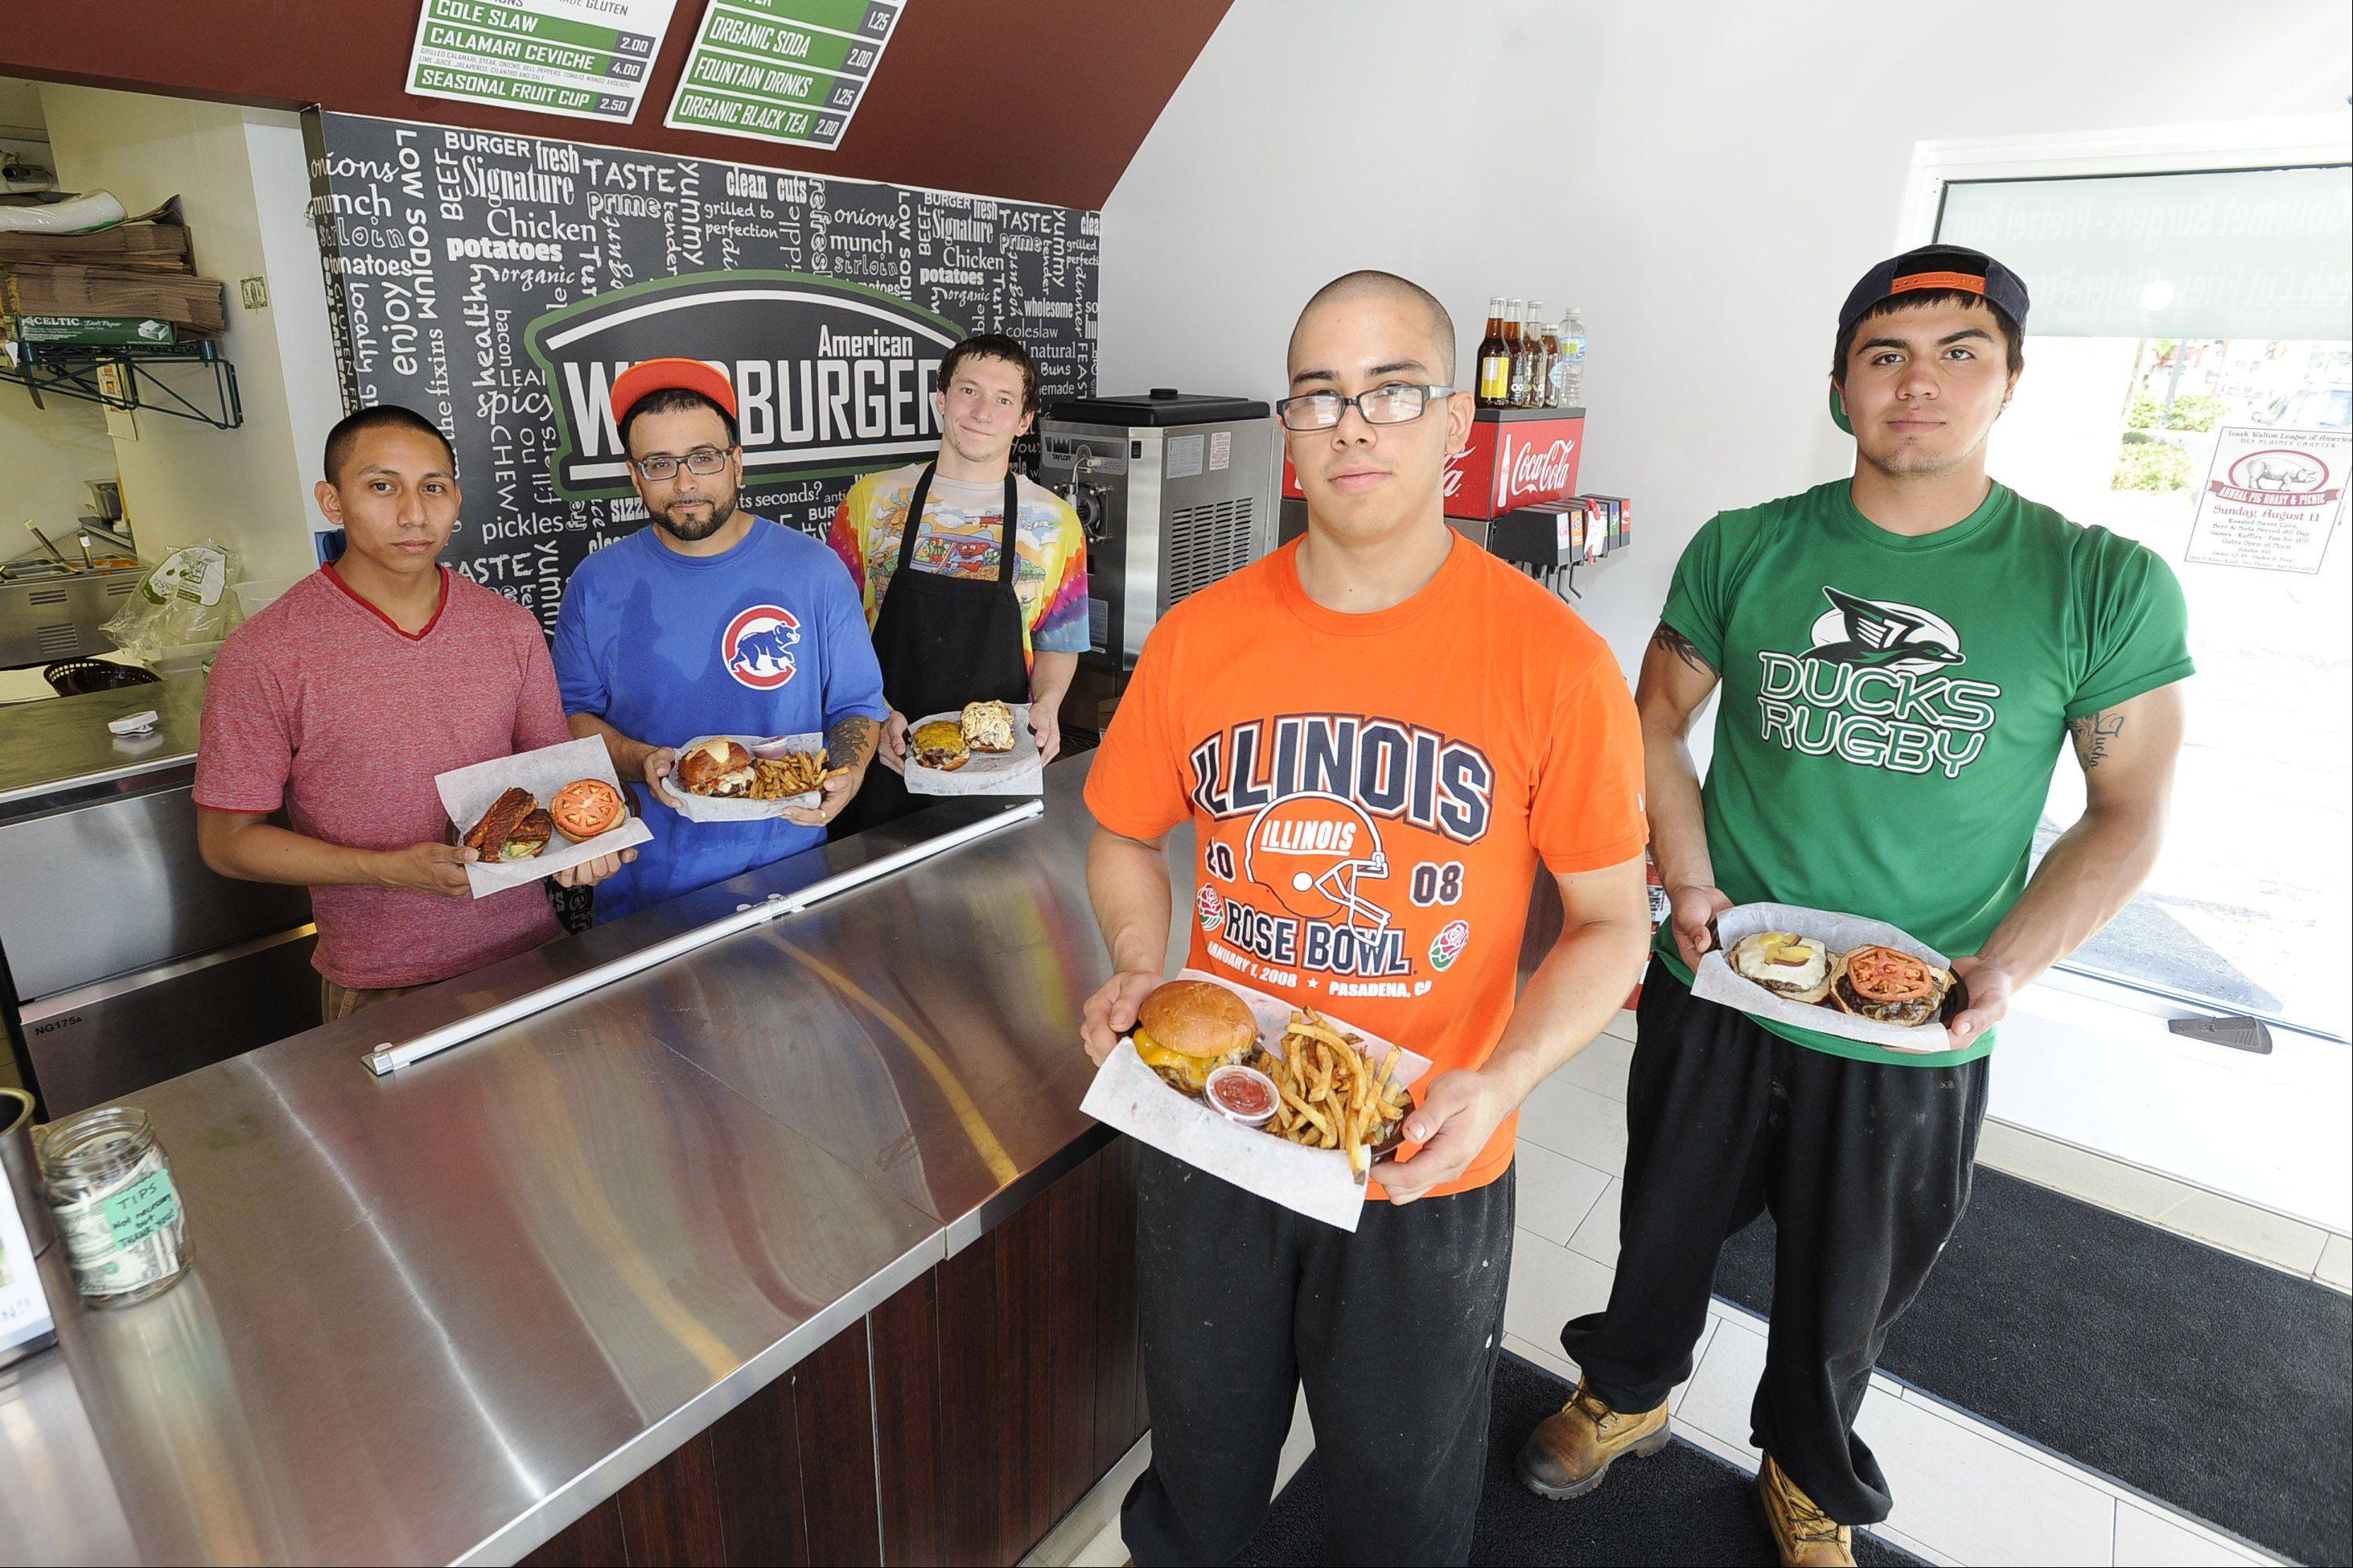 The American Wildburger staff, including manager Antonio Talavera, front, left, and Hugo Dacensio along with Chuy Ramirez, back row from left, Nino Valerio and Dominic Karpinski, flip the burgers at the Oakton Avenue eatery.